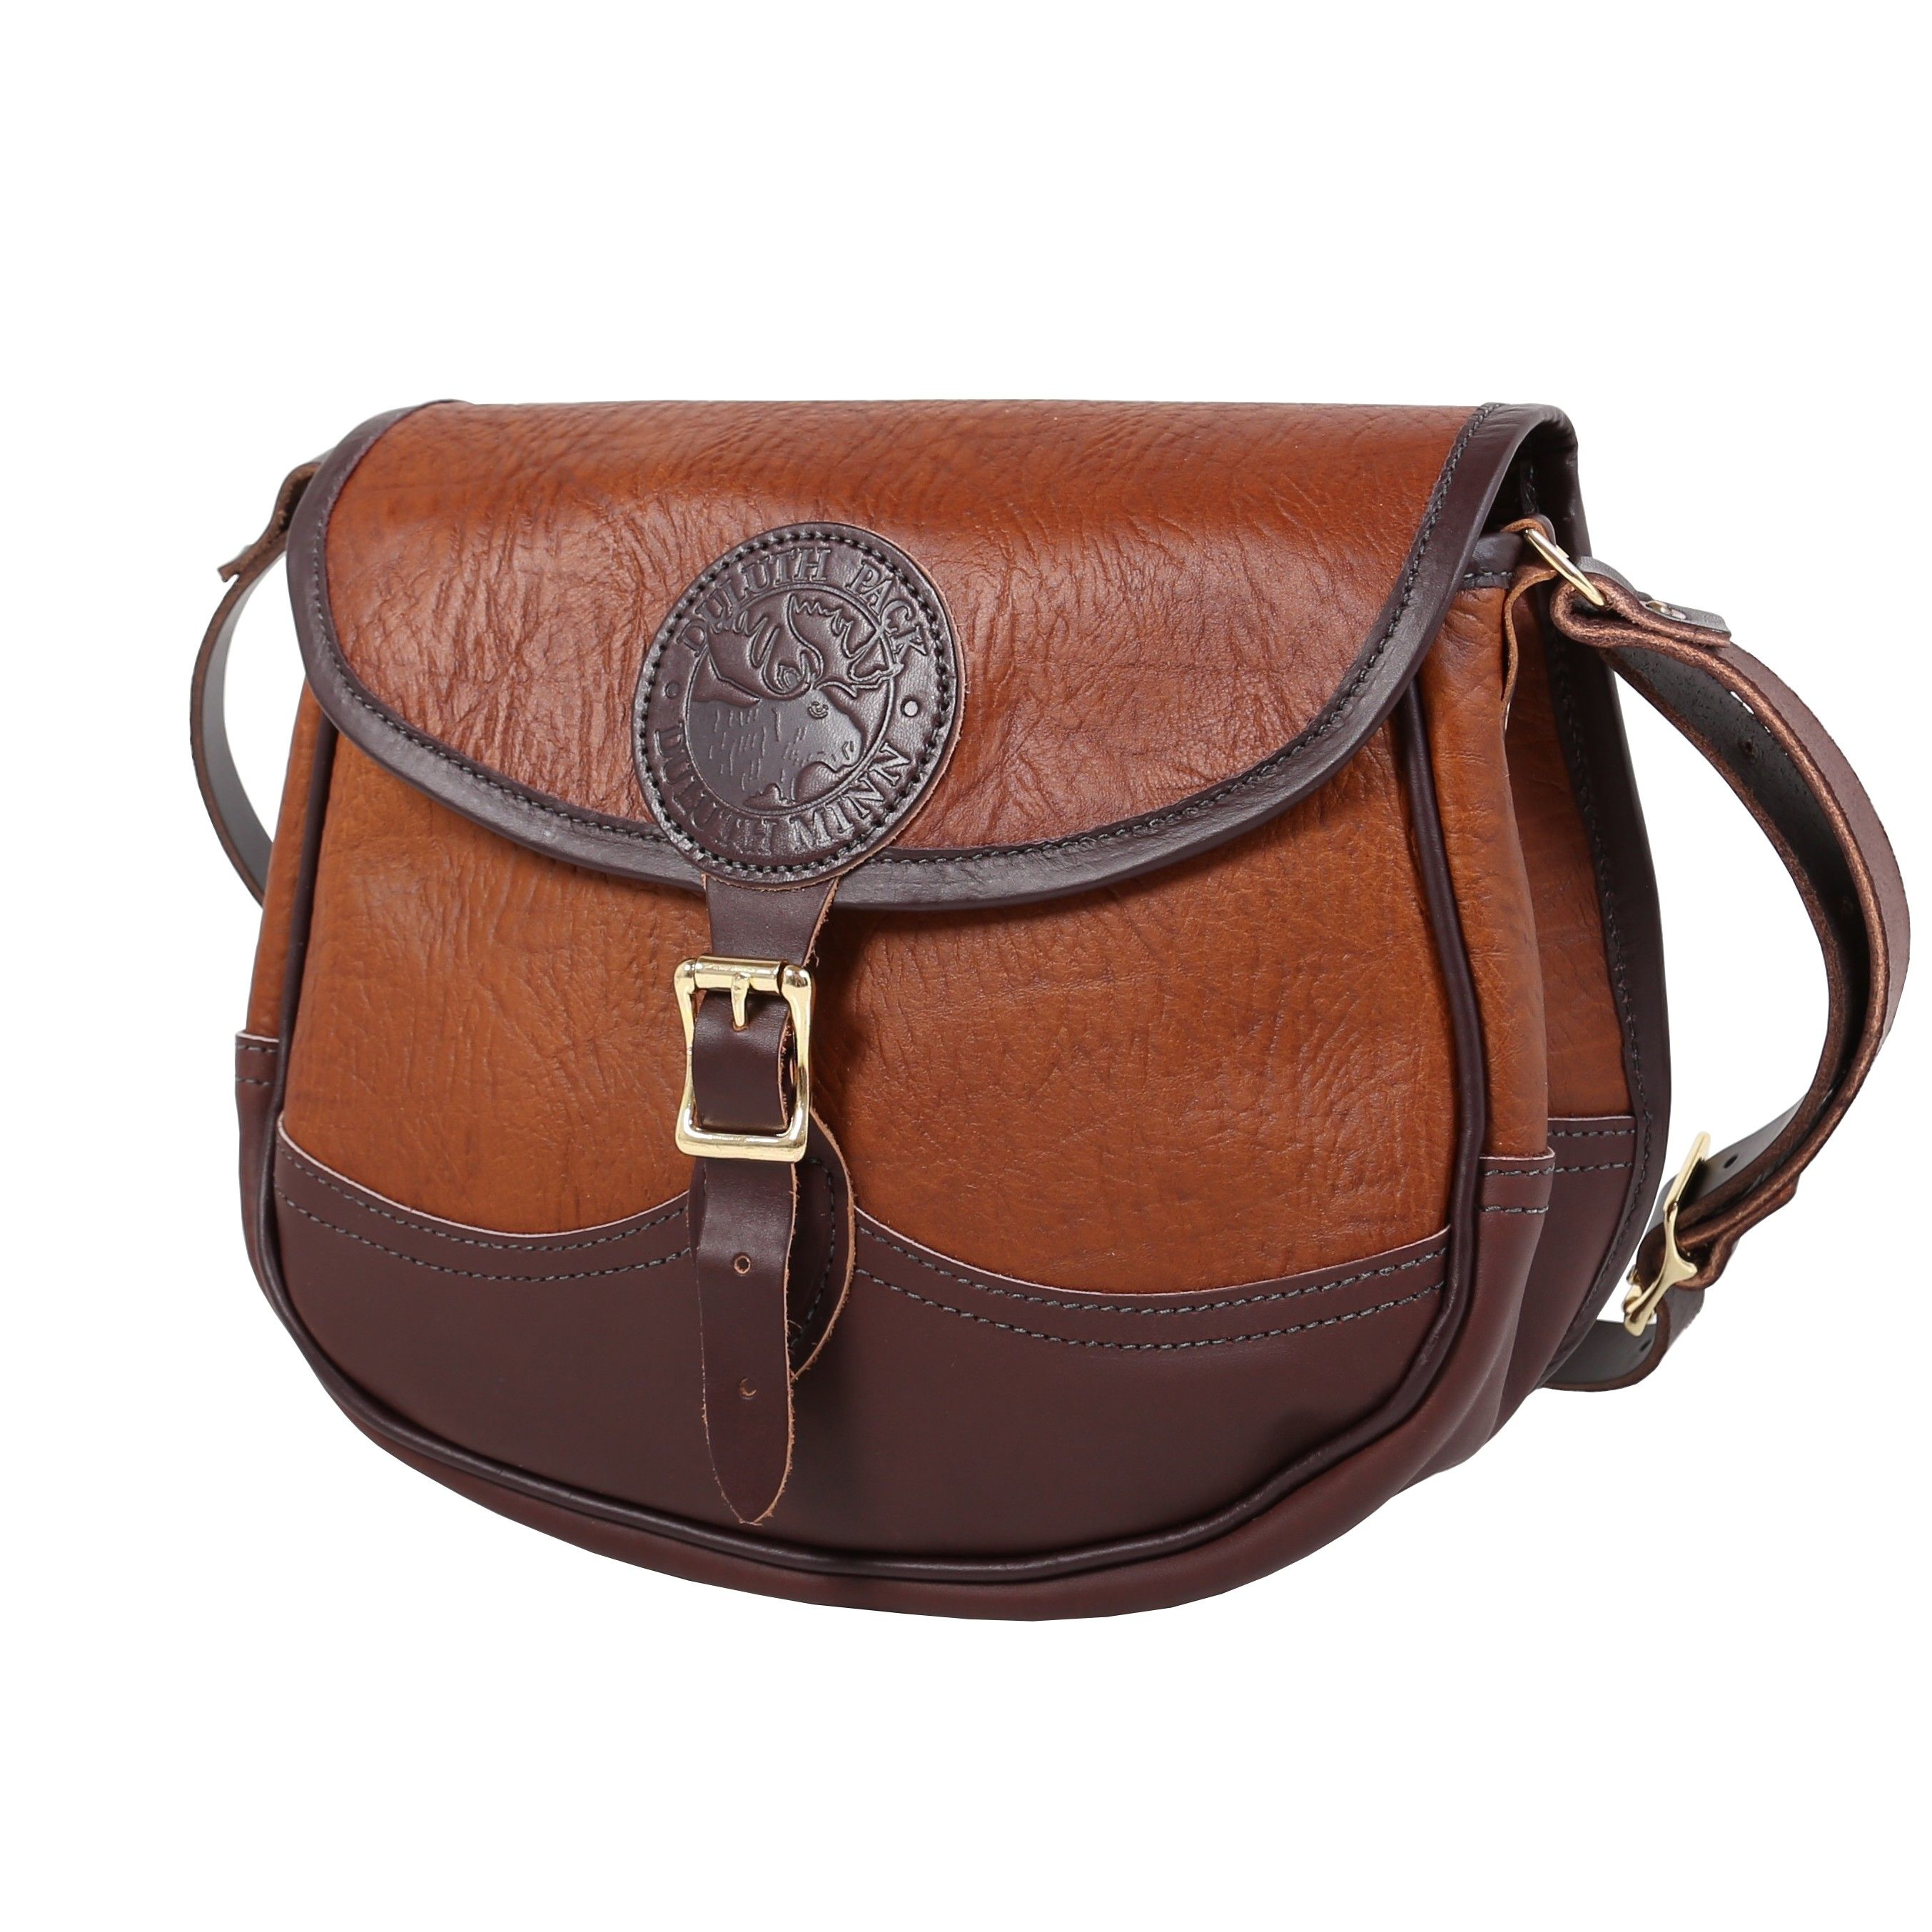 Bison Leather Conceal & Carry Shell Purse Handbag.  Made in USA 🇺🇸 Guaranteed For Life. Duluth Pack #2A #girlsandguns